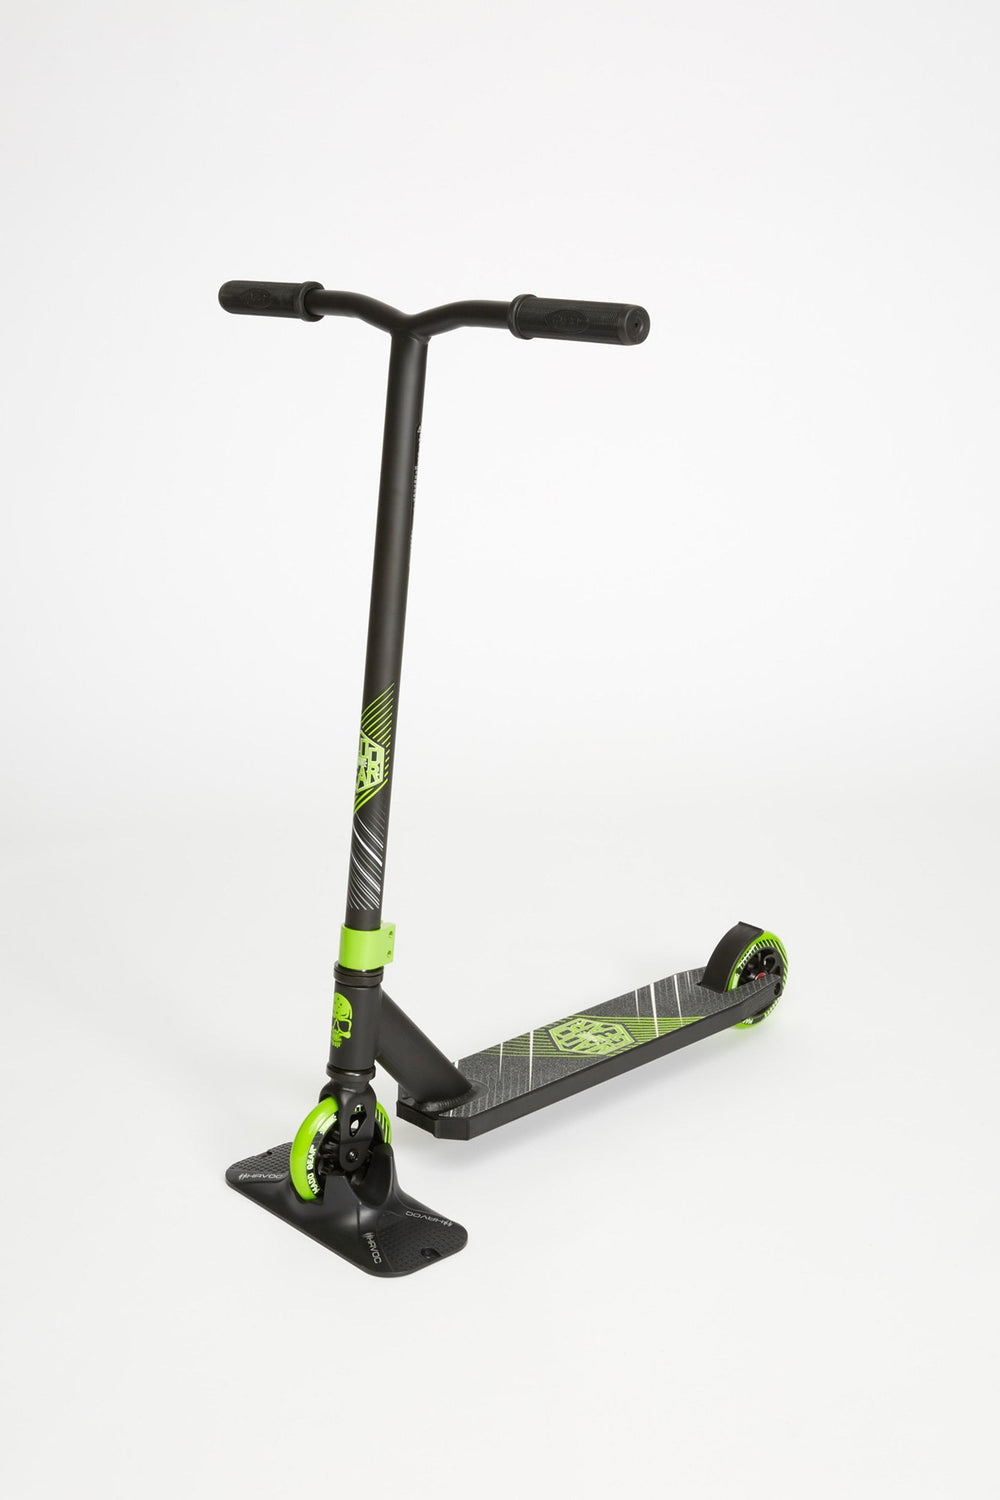 Madd Gear Kick Extreme Green Scooter Green